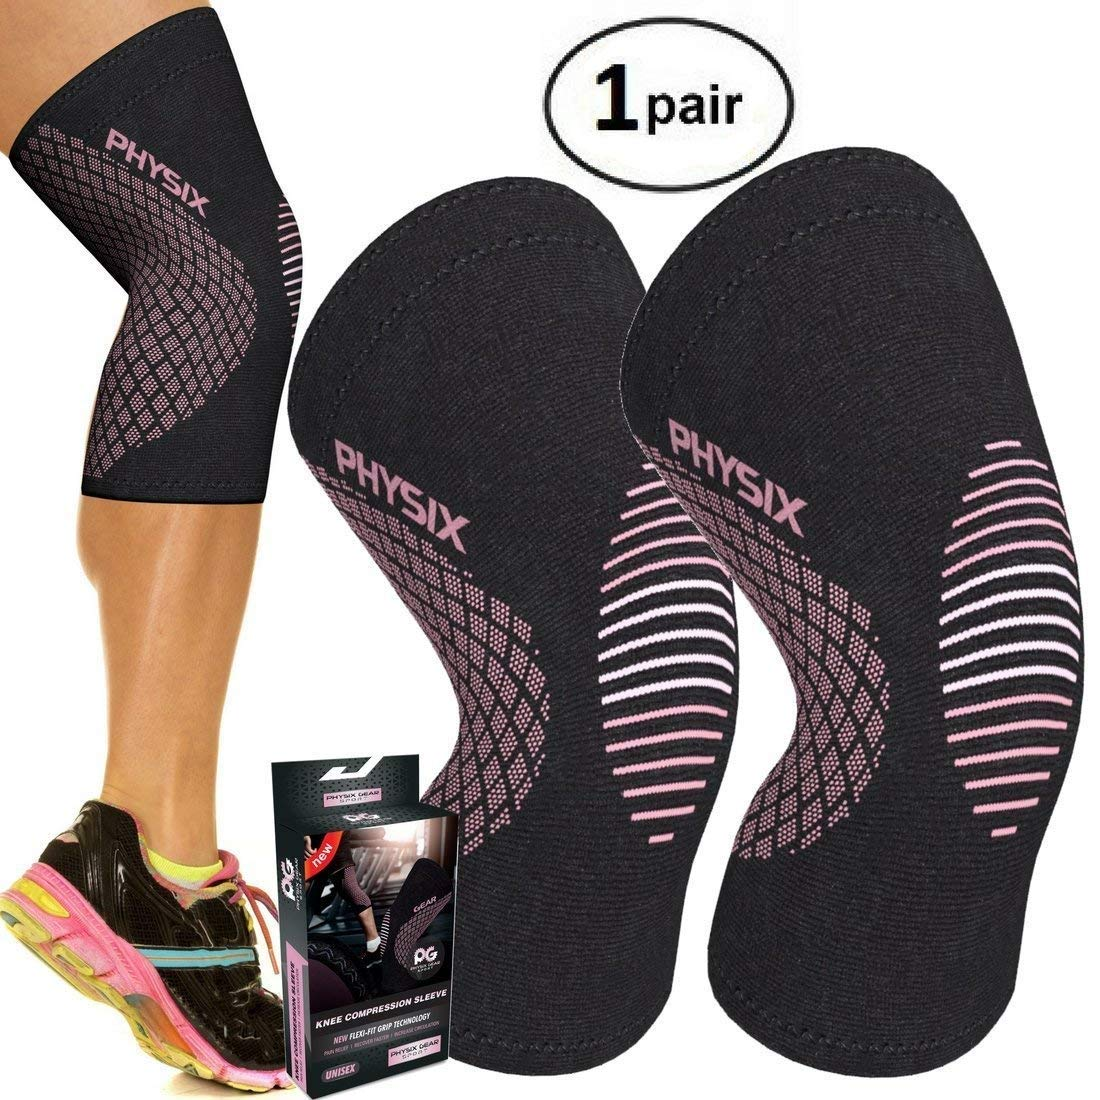 PHYSIX GEAR SPORT Knee Support Brace - Premium Recovery & Compression Sleeve For Meniscus Tear, ACL, Running & Arthritis - Best Neoprene Wrap for Crossfit, Squats & Heavy Duty Workouts (1 PAIR Pink S)